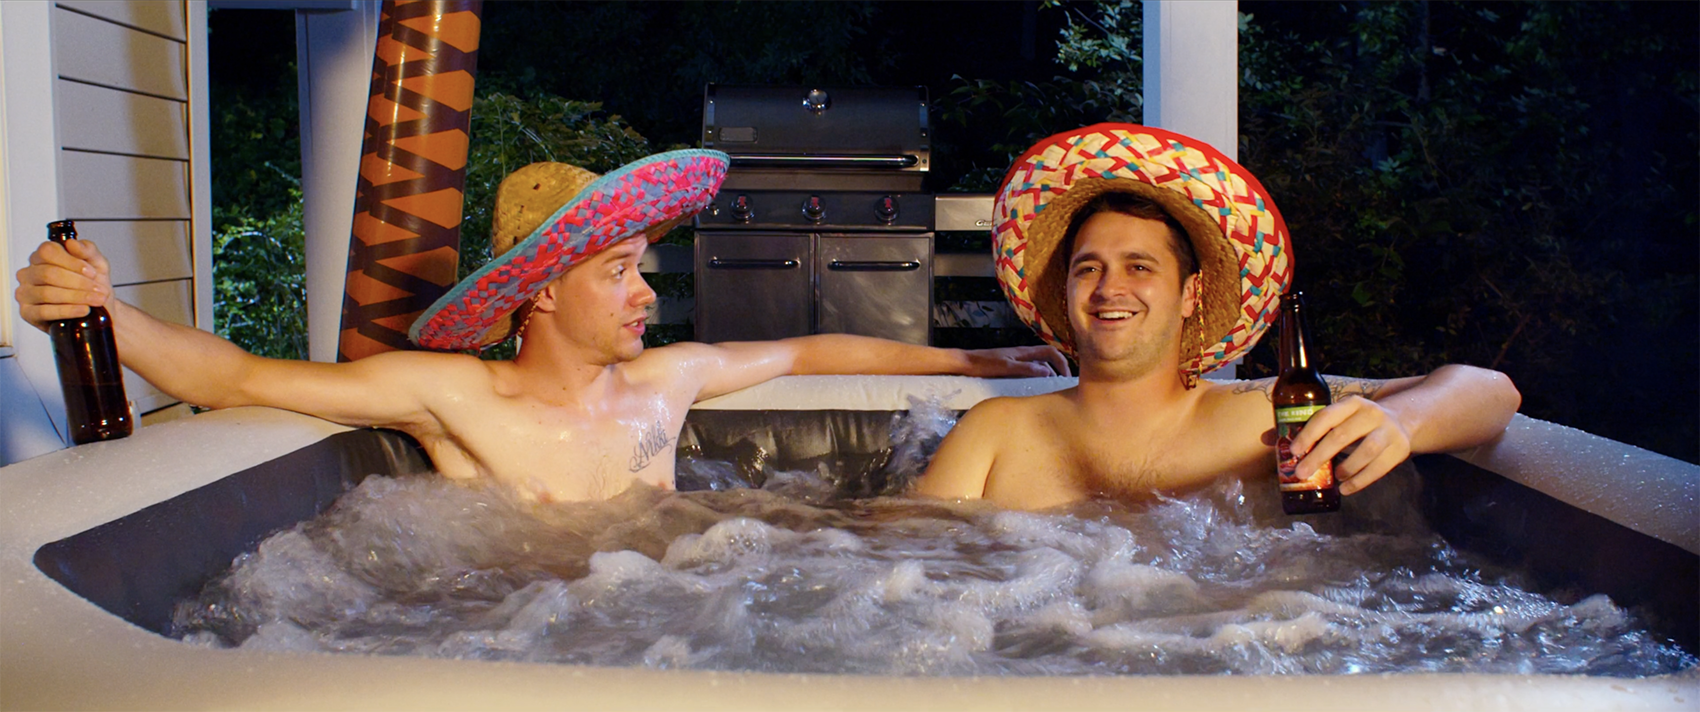 Two guys wearing sombreros sit in a hot tub.